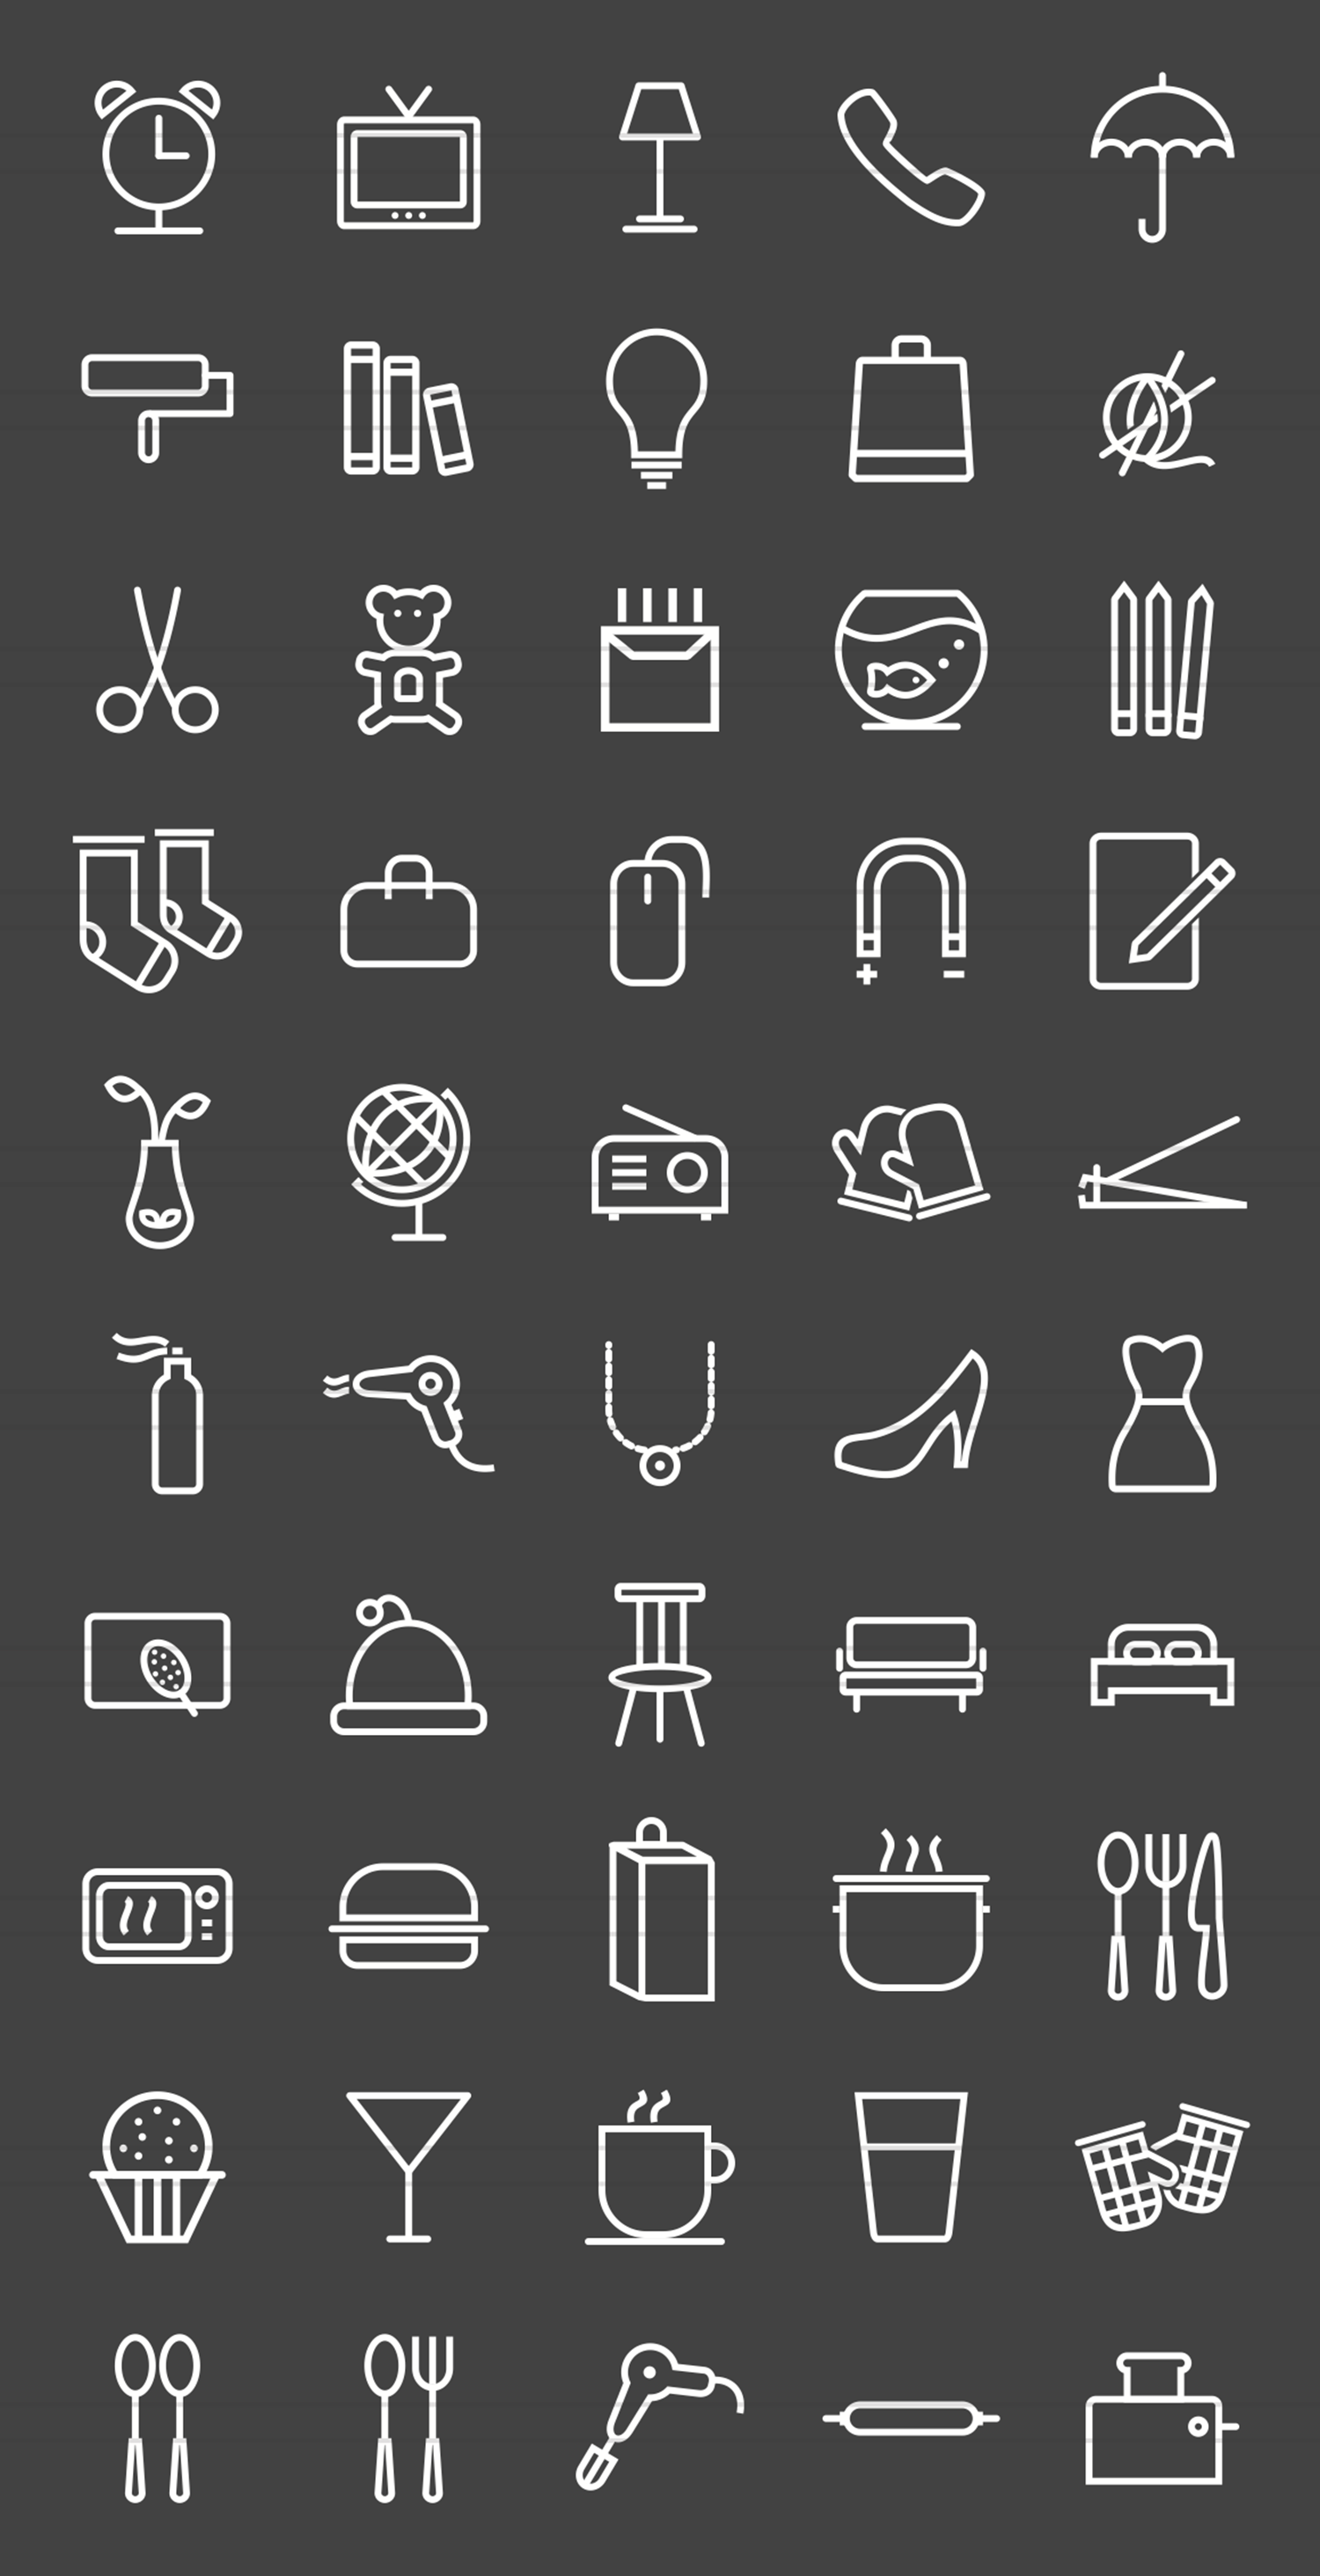 50 Household Objects Line Inverted Icons example image 2